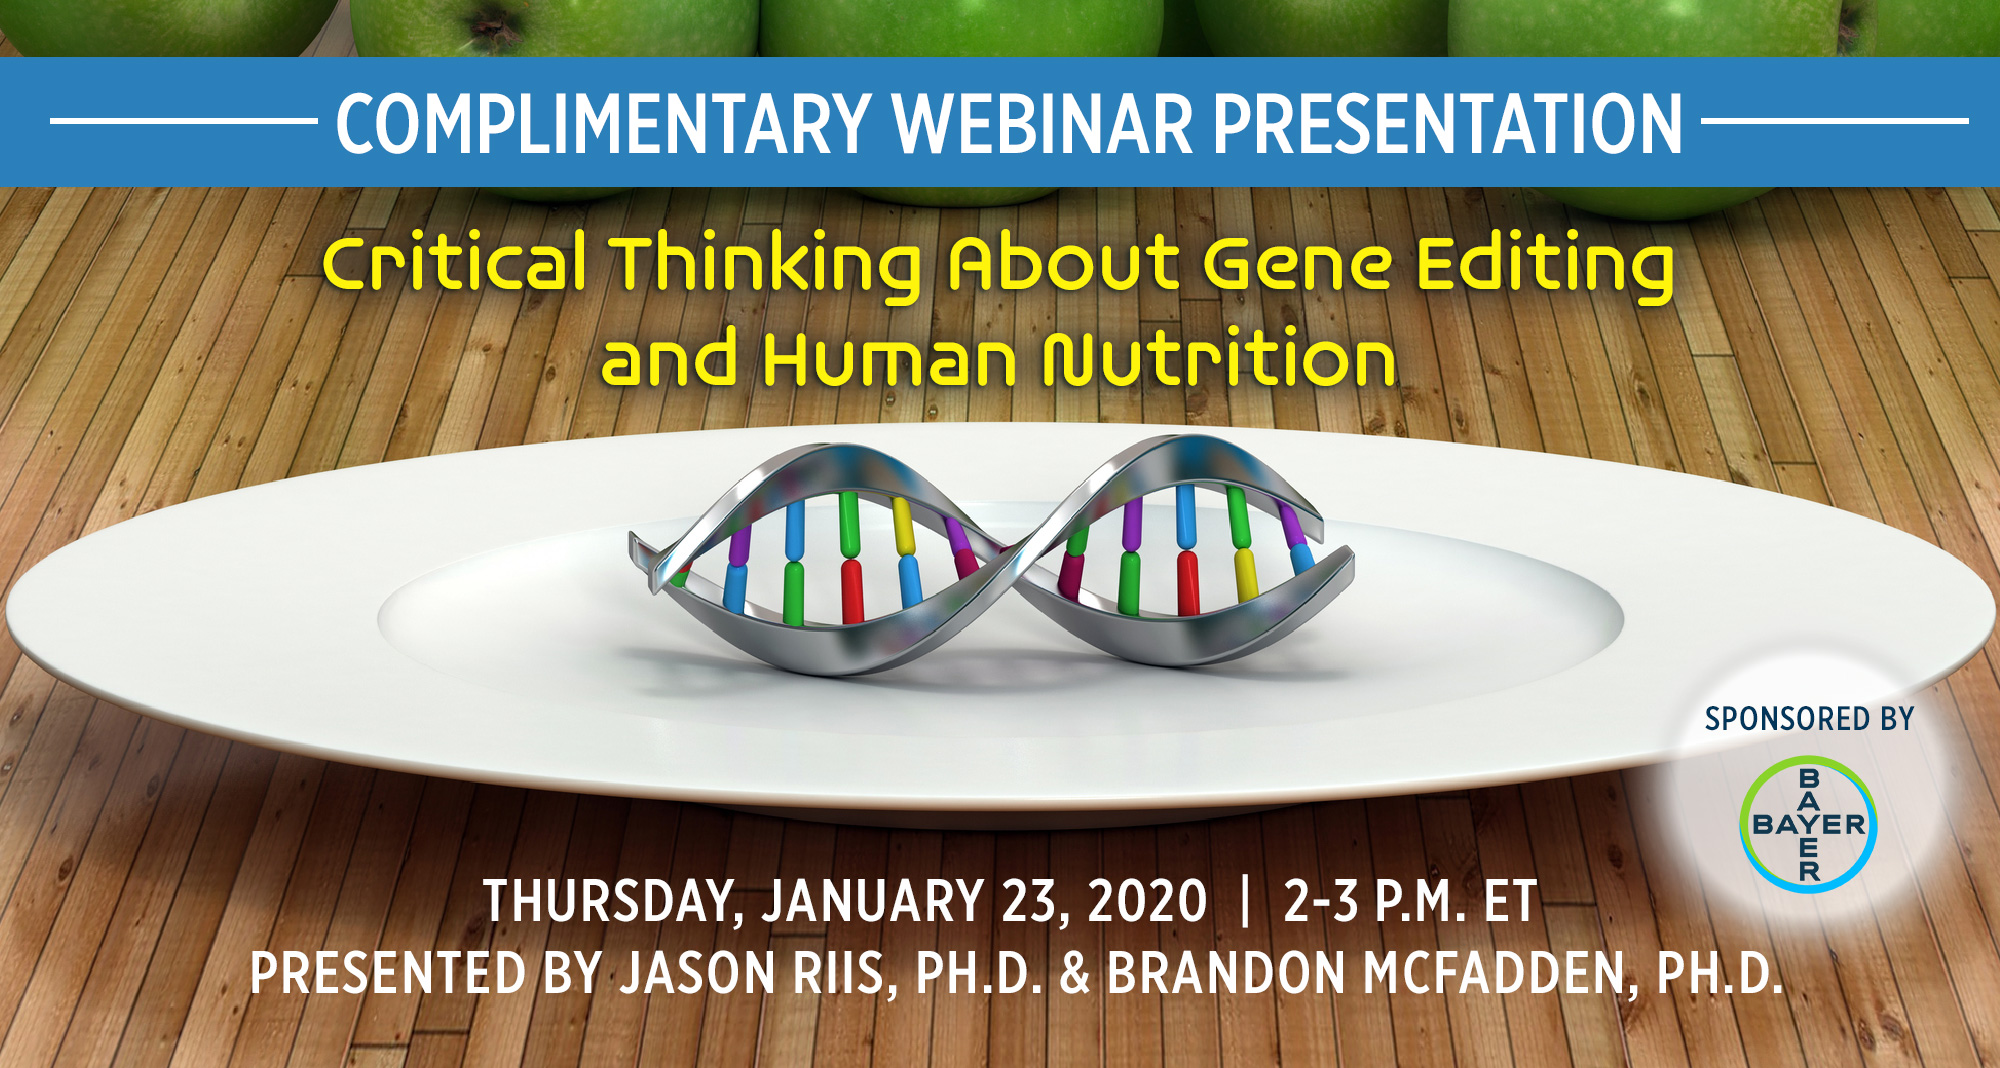 Complimentary Webinar Presentation: Critical Thinking About Gene Editing and Human Nutrition | Presented by Jason Riis, PH.D. & Brandon McFadden, PH.D.| Wednesday, January 23, 2020 from 1-2 P.M. ET | Earn 1 CEU